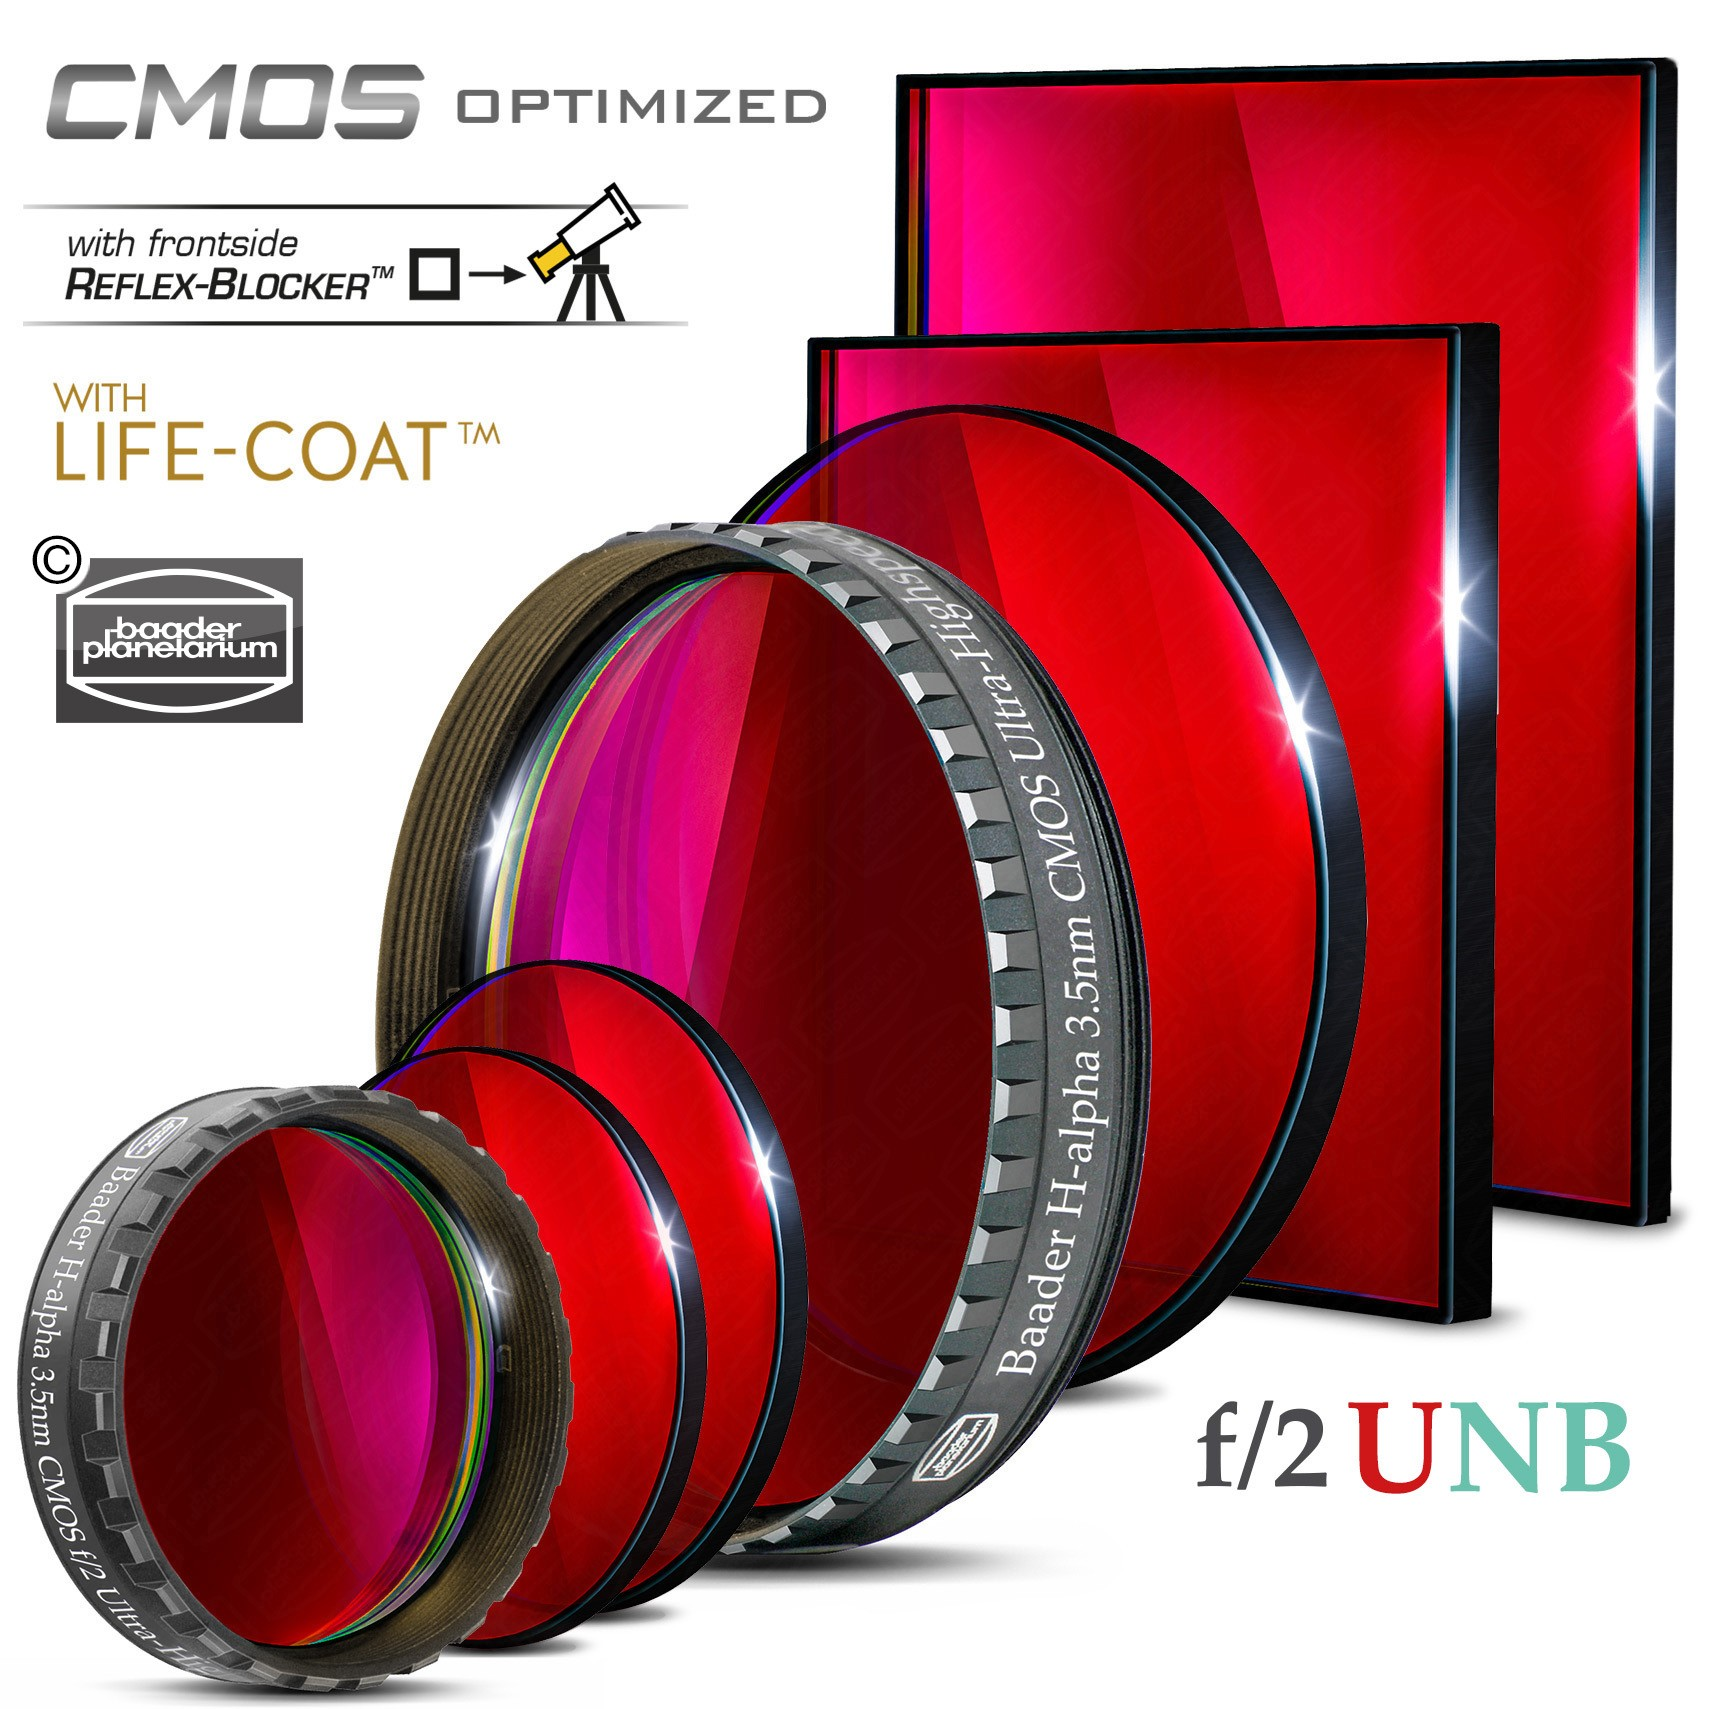 Baader H-alpha f/2 Ultra-Highspeed-Filters (3.5nm) – CMOS-optimized